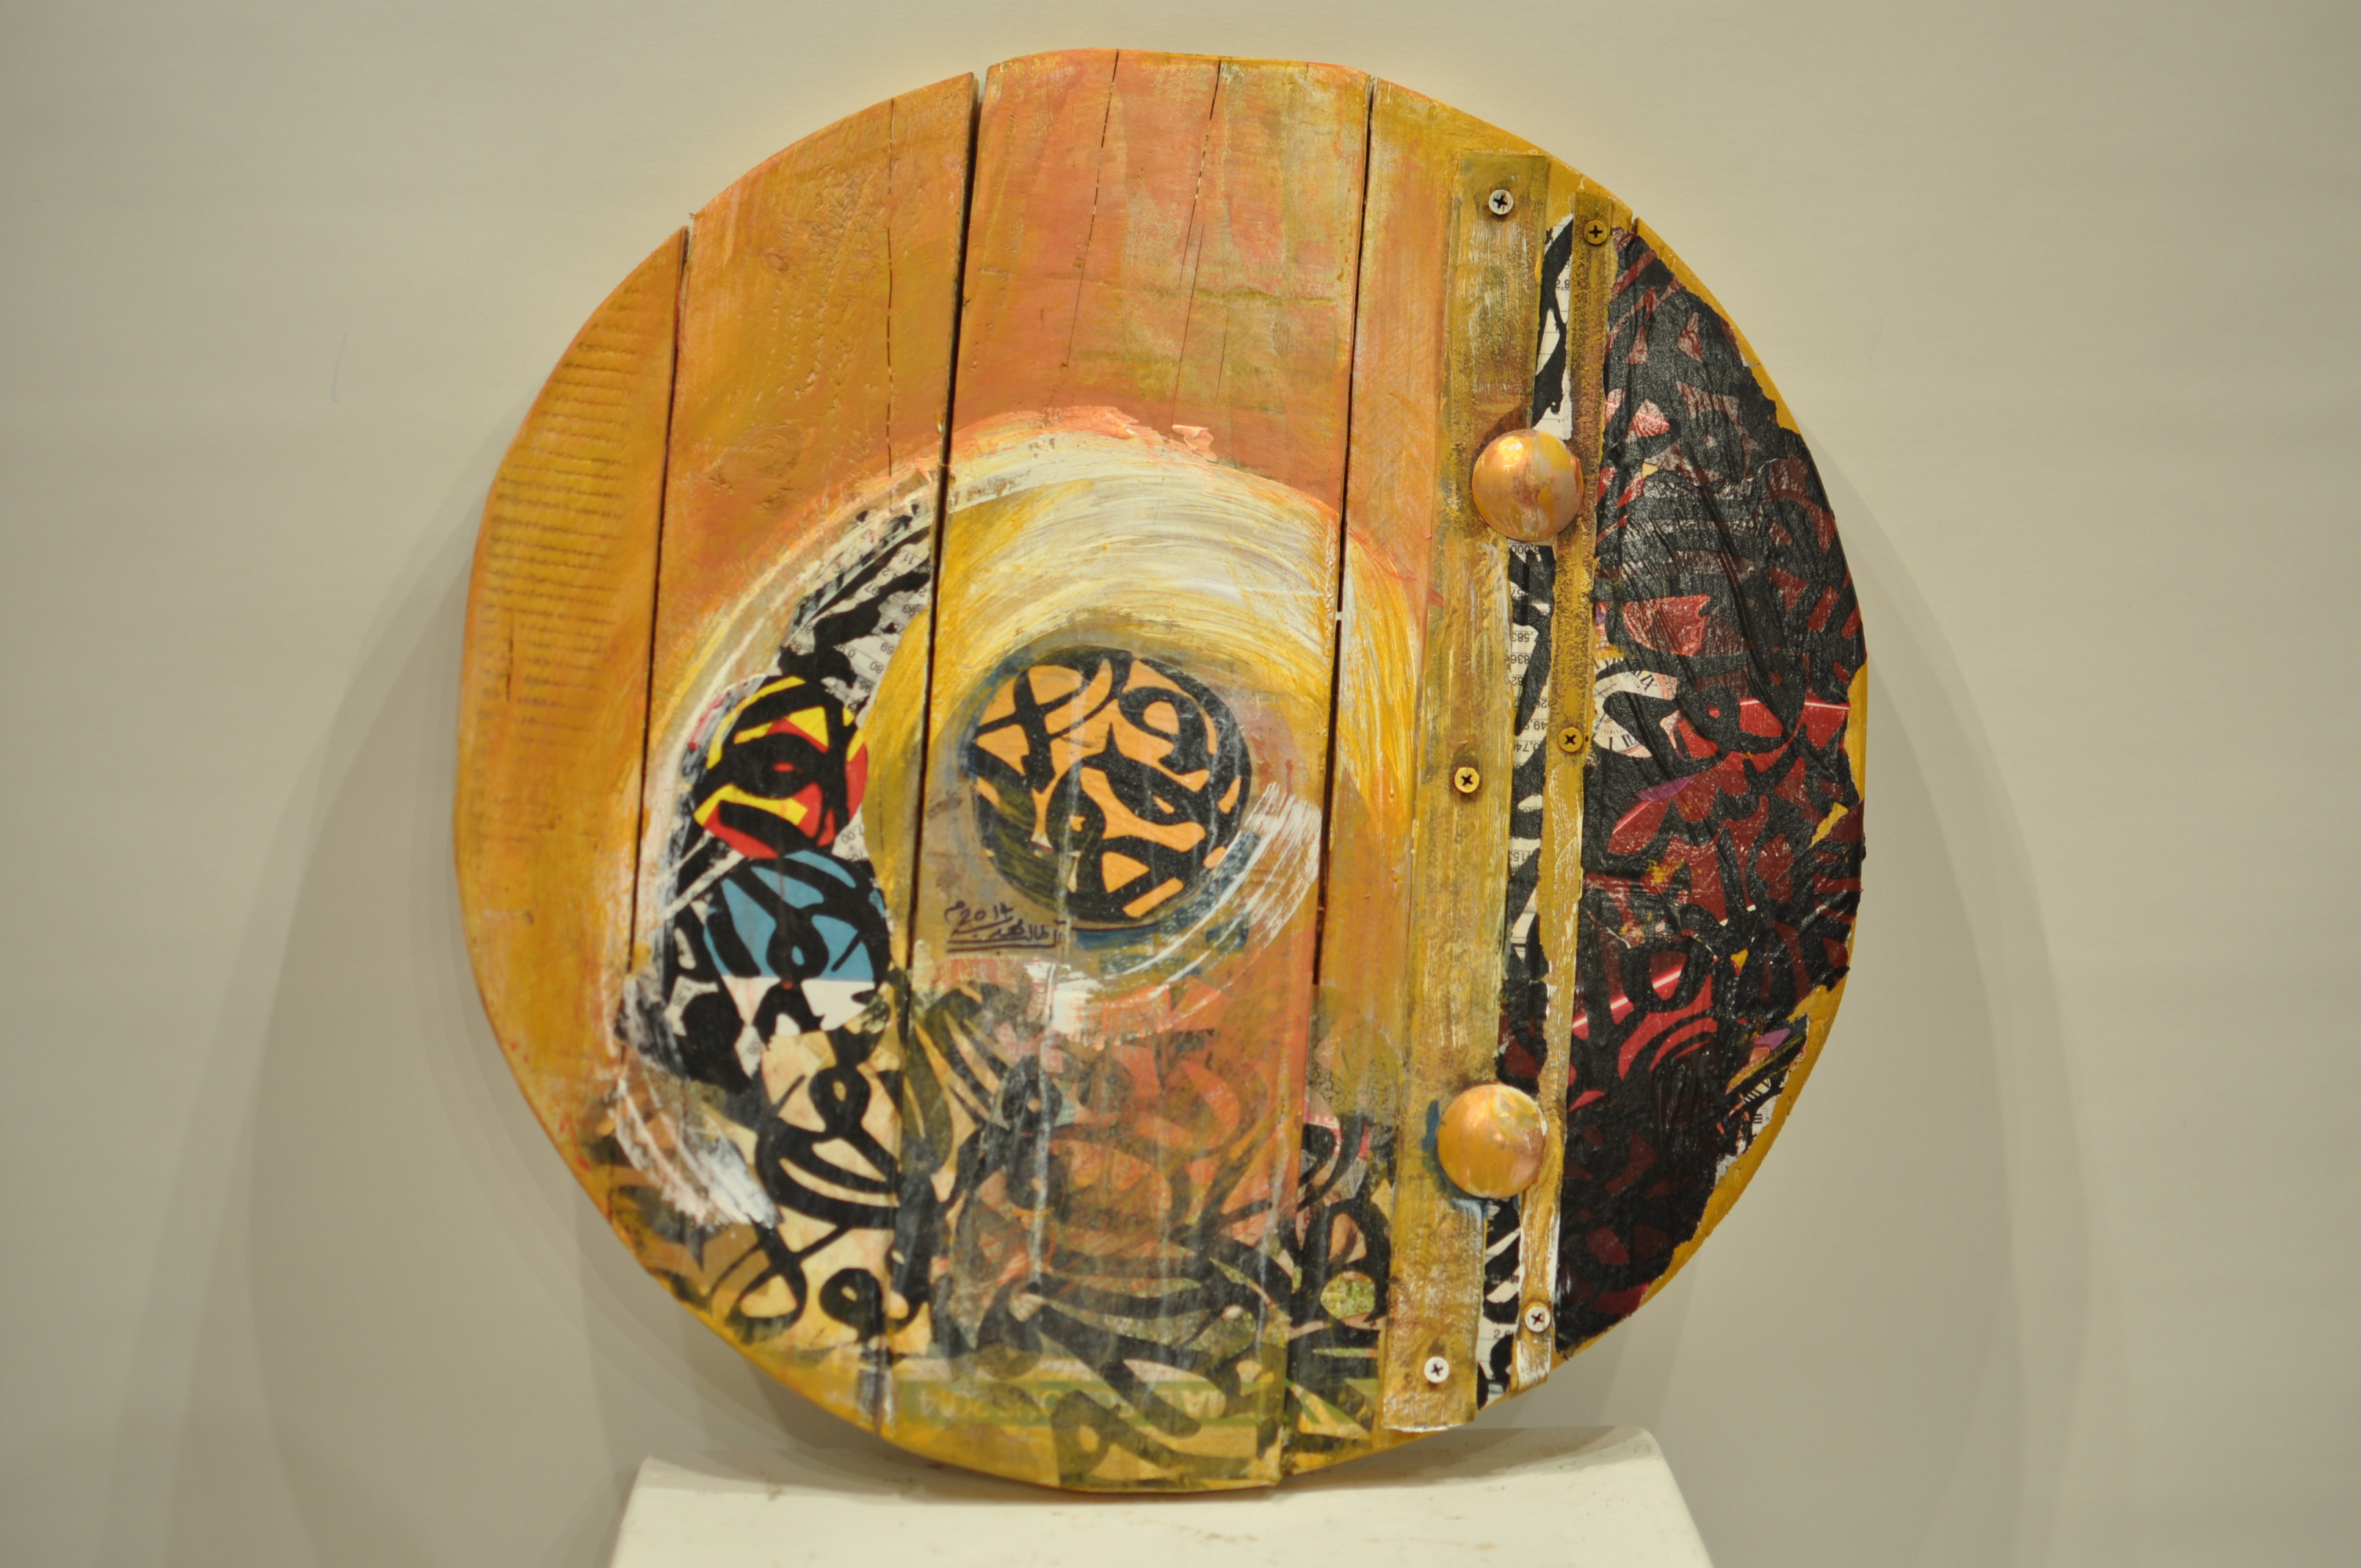 MAHDIA AL TALEB. Circle 4. D = 49 cm. Mixed Media on Wood. 2014 AED 5,000.JPG